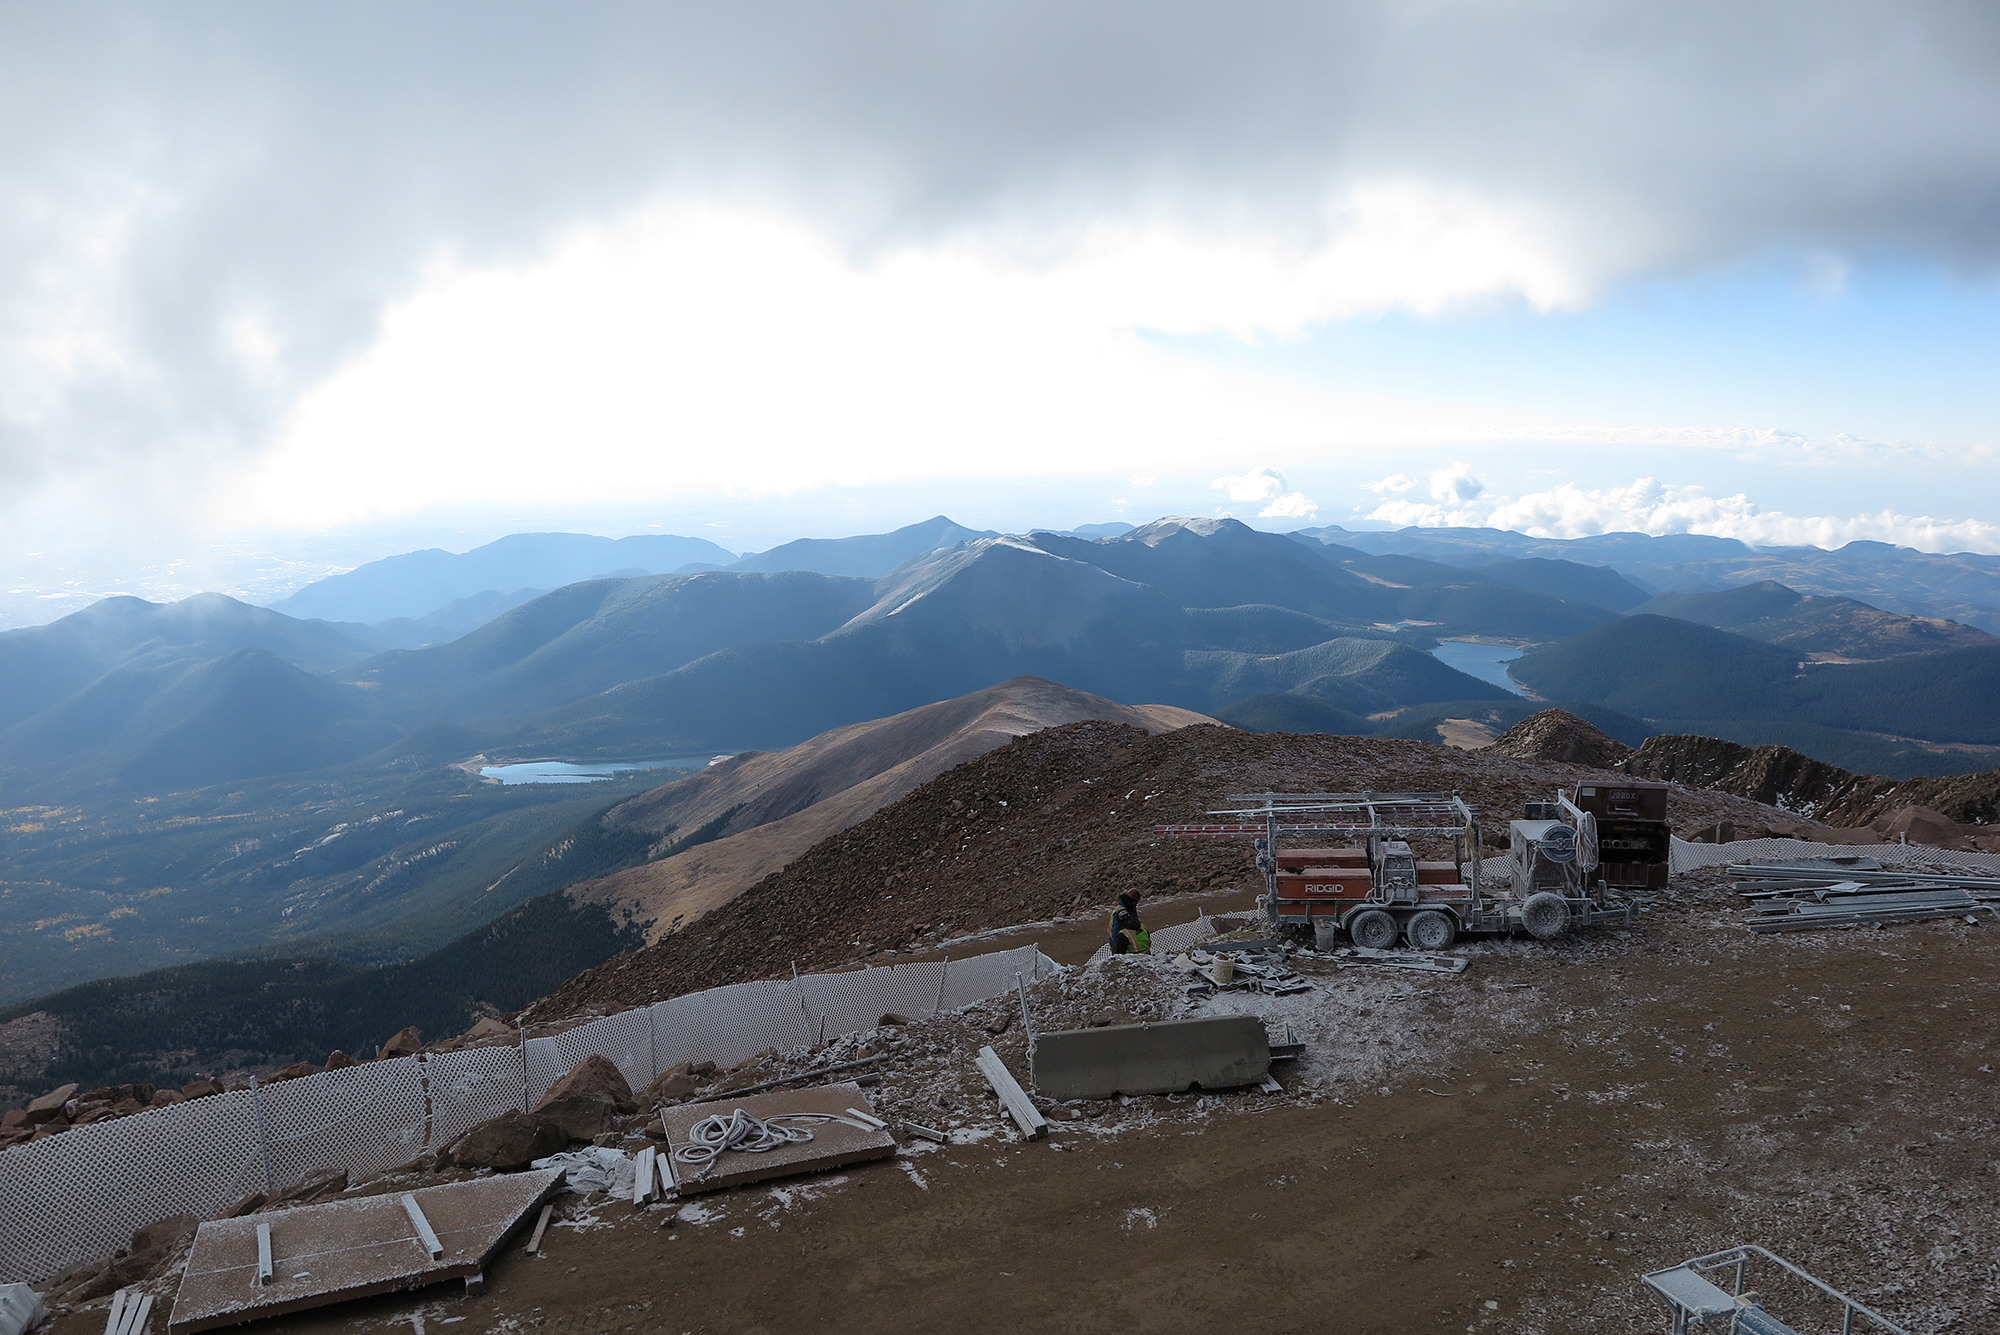 """The 14,115 foot summit of Pikes Peak, the view from which inspired the poem """"America the Beautiful,"""" attracts nearly 600,000 visitors annually."""